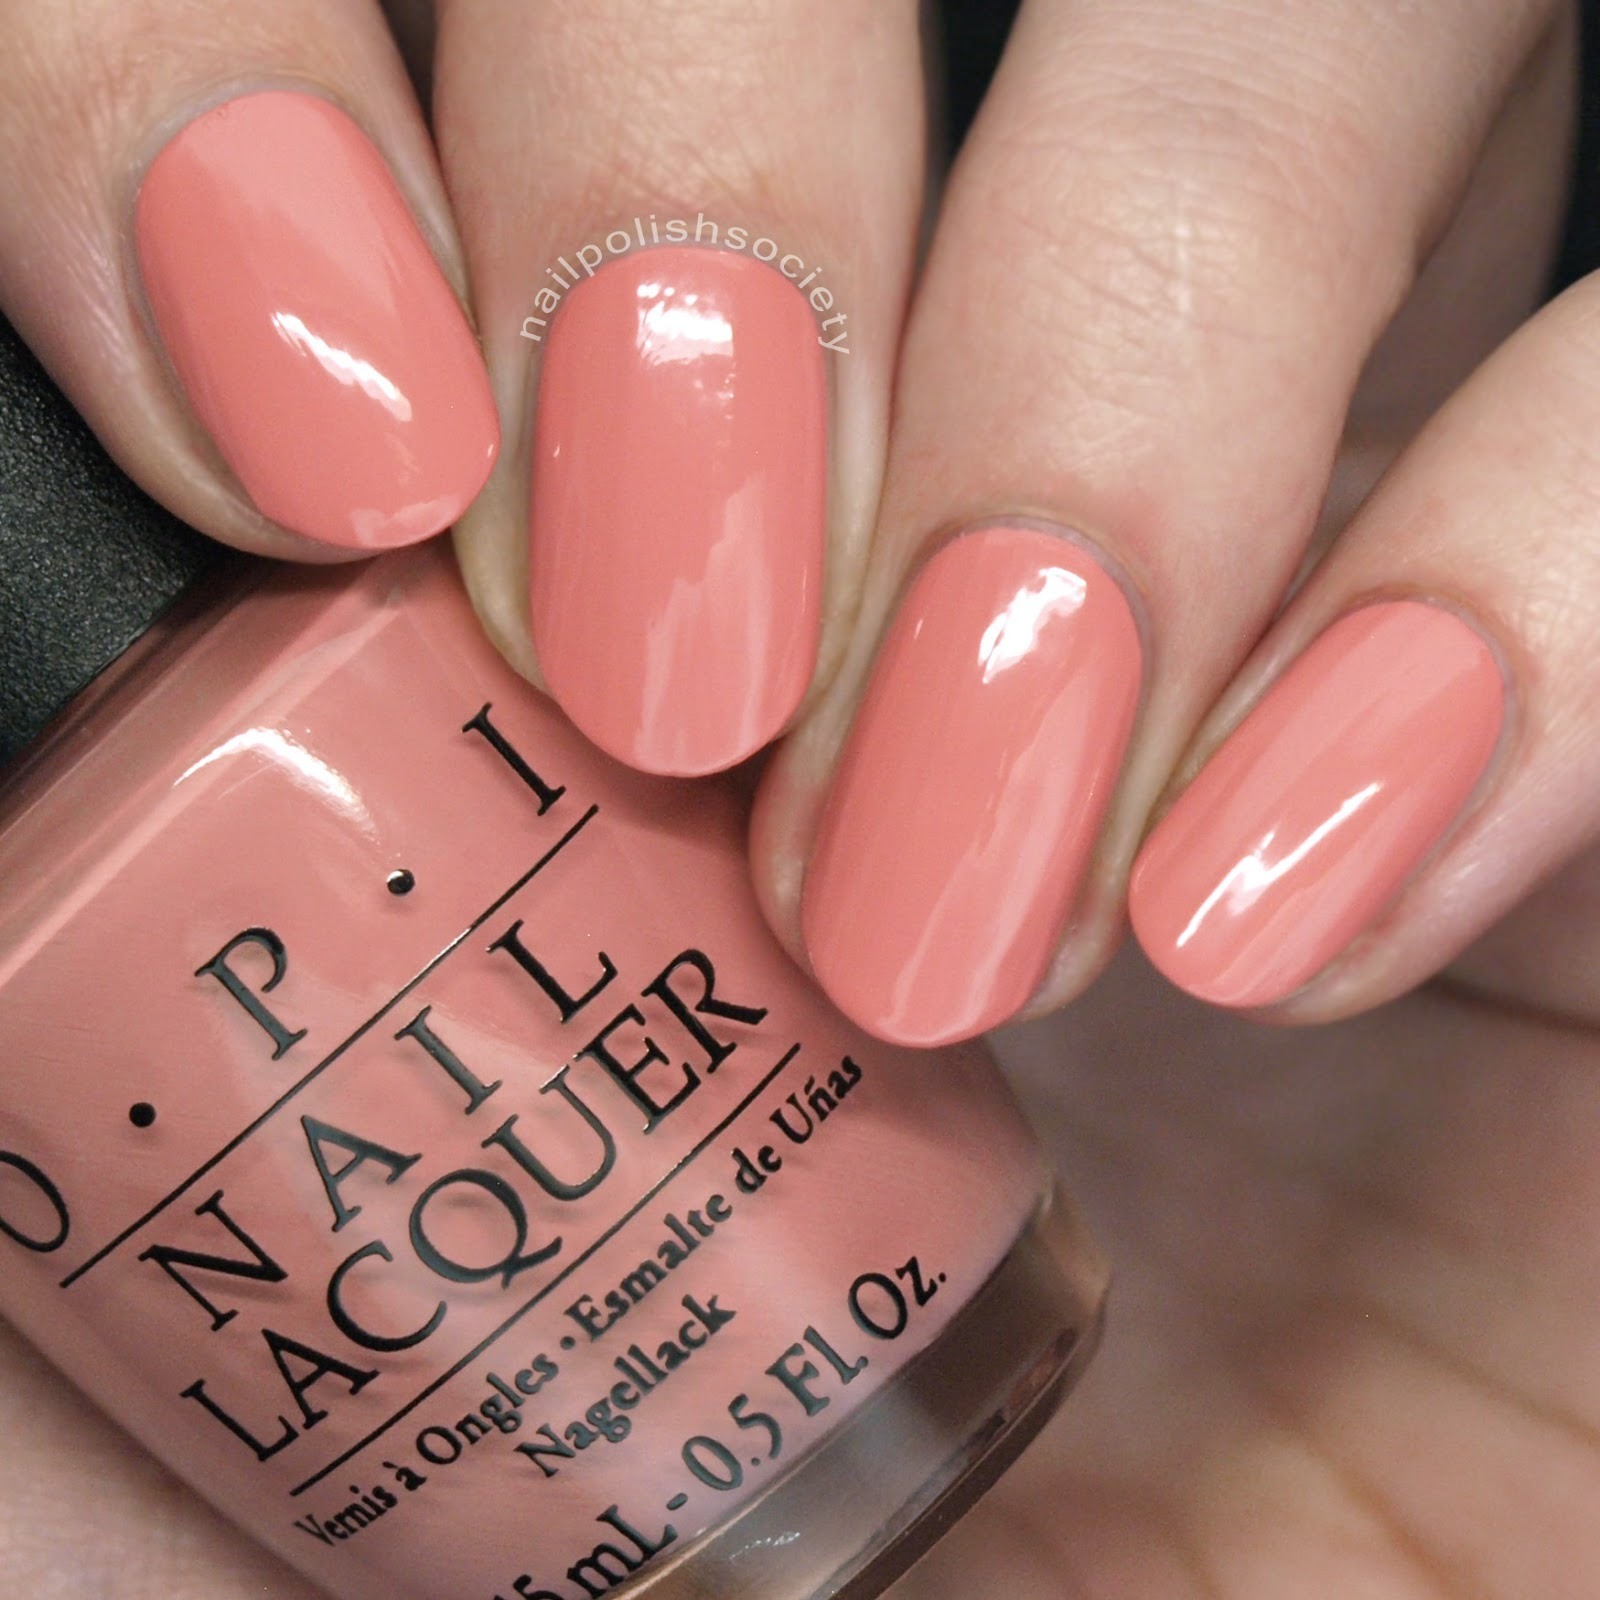 Nail Polish Society Opi Summer 2017 California Dreaming Collection